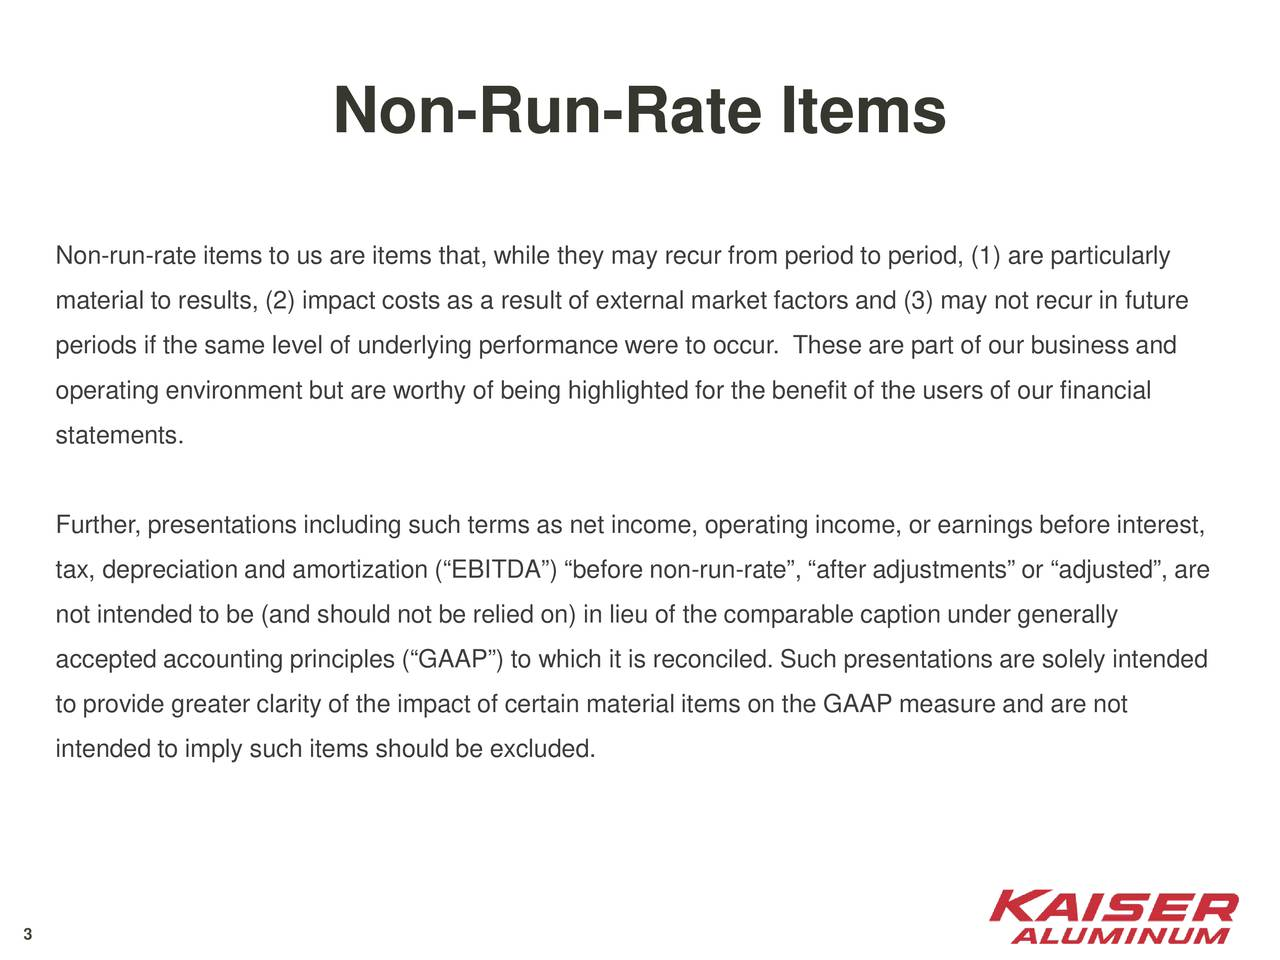 Non-run-rate items to us are items that, while they may recur from period to period, (1) are particularly material to results, (2) impact costs as a result of external market factors and (3) may not recur in future periods if the same level of underlying performance were to occur. These are part of our business and operating environment but are worthy of being highlighted for the benefit of the users of our financial statements. Further, presentations including such terms as net income, operating income, or earnings before interest, tax, depreciation and amortization (EBITDA) before non-run-rate, after adjustments or adjusted, are not intended to be (and should not be relied on) in lieu of the comparable caption under generally accepted accounting principles (GAAP) to which it is reconciled. Such presentations are solely intended to provide greater clarity of the impact of certain material items on the GAAP measure and are not intended to imply such items should be excluded. 3